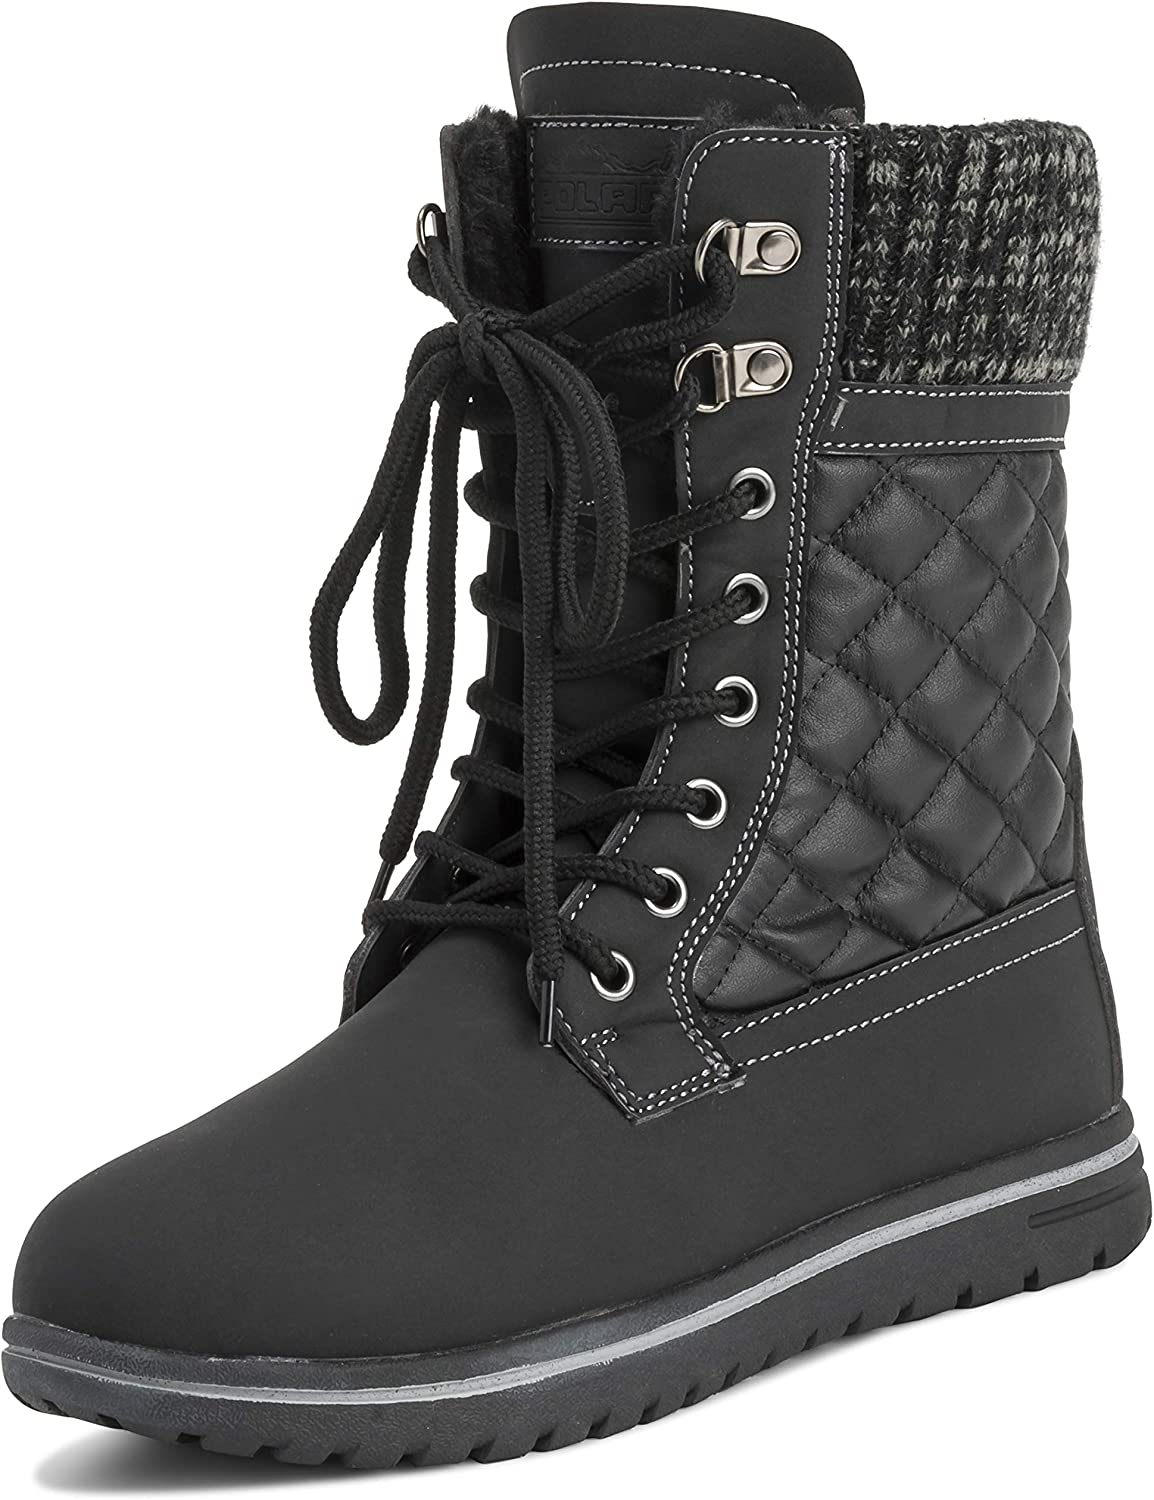 Womens Las Vegas Mall Waterproof Durable Snow Winter Ankle Hiking Super sale period limited Fleece Boots